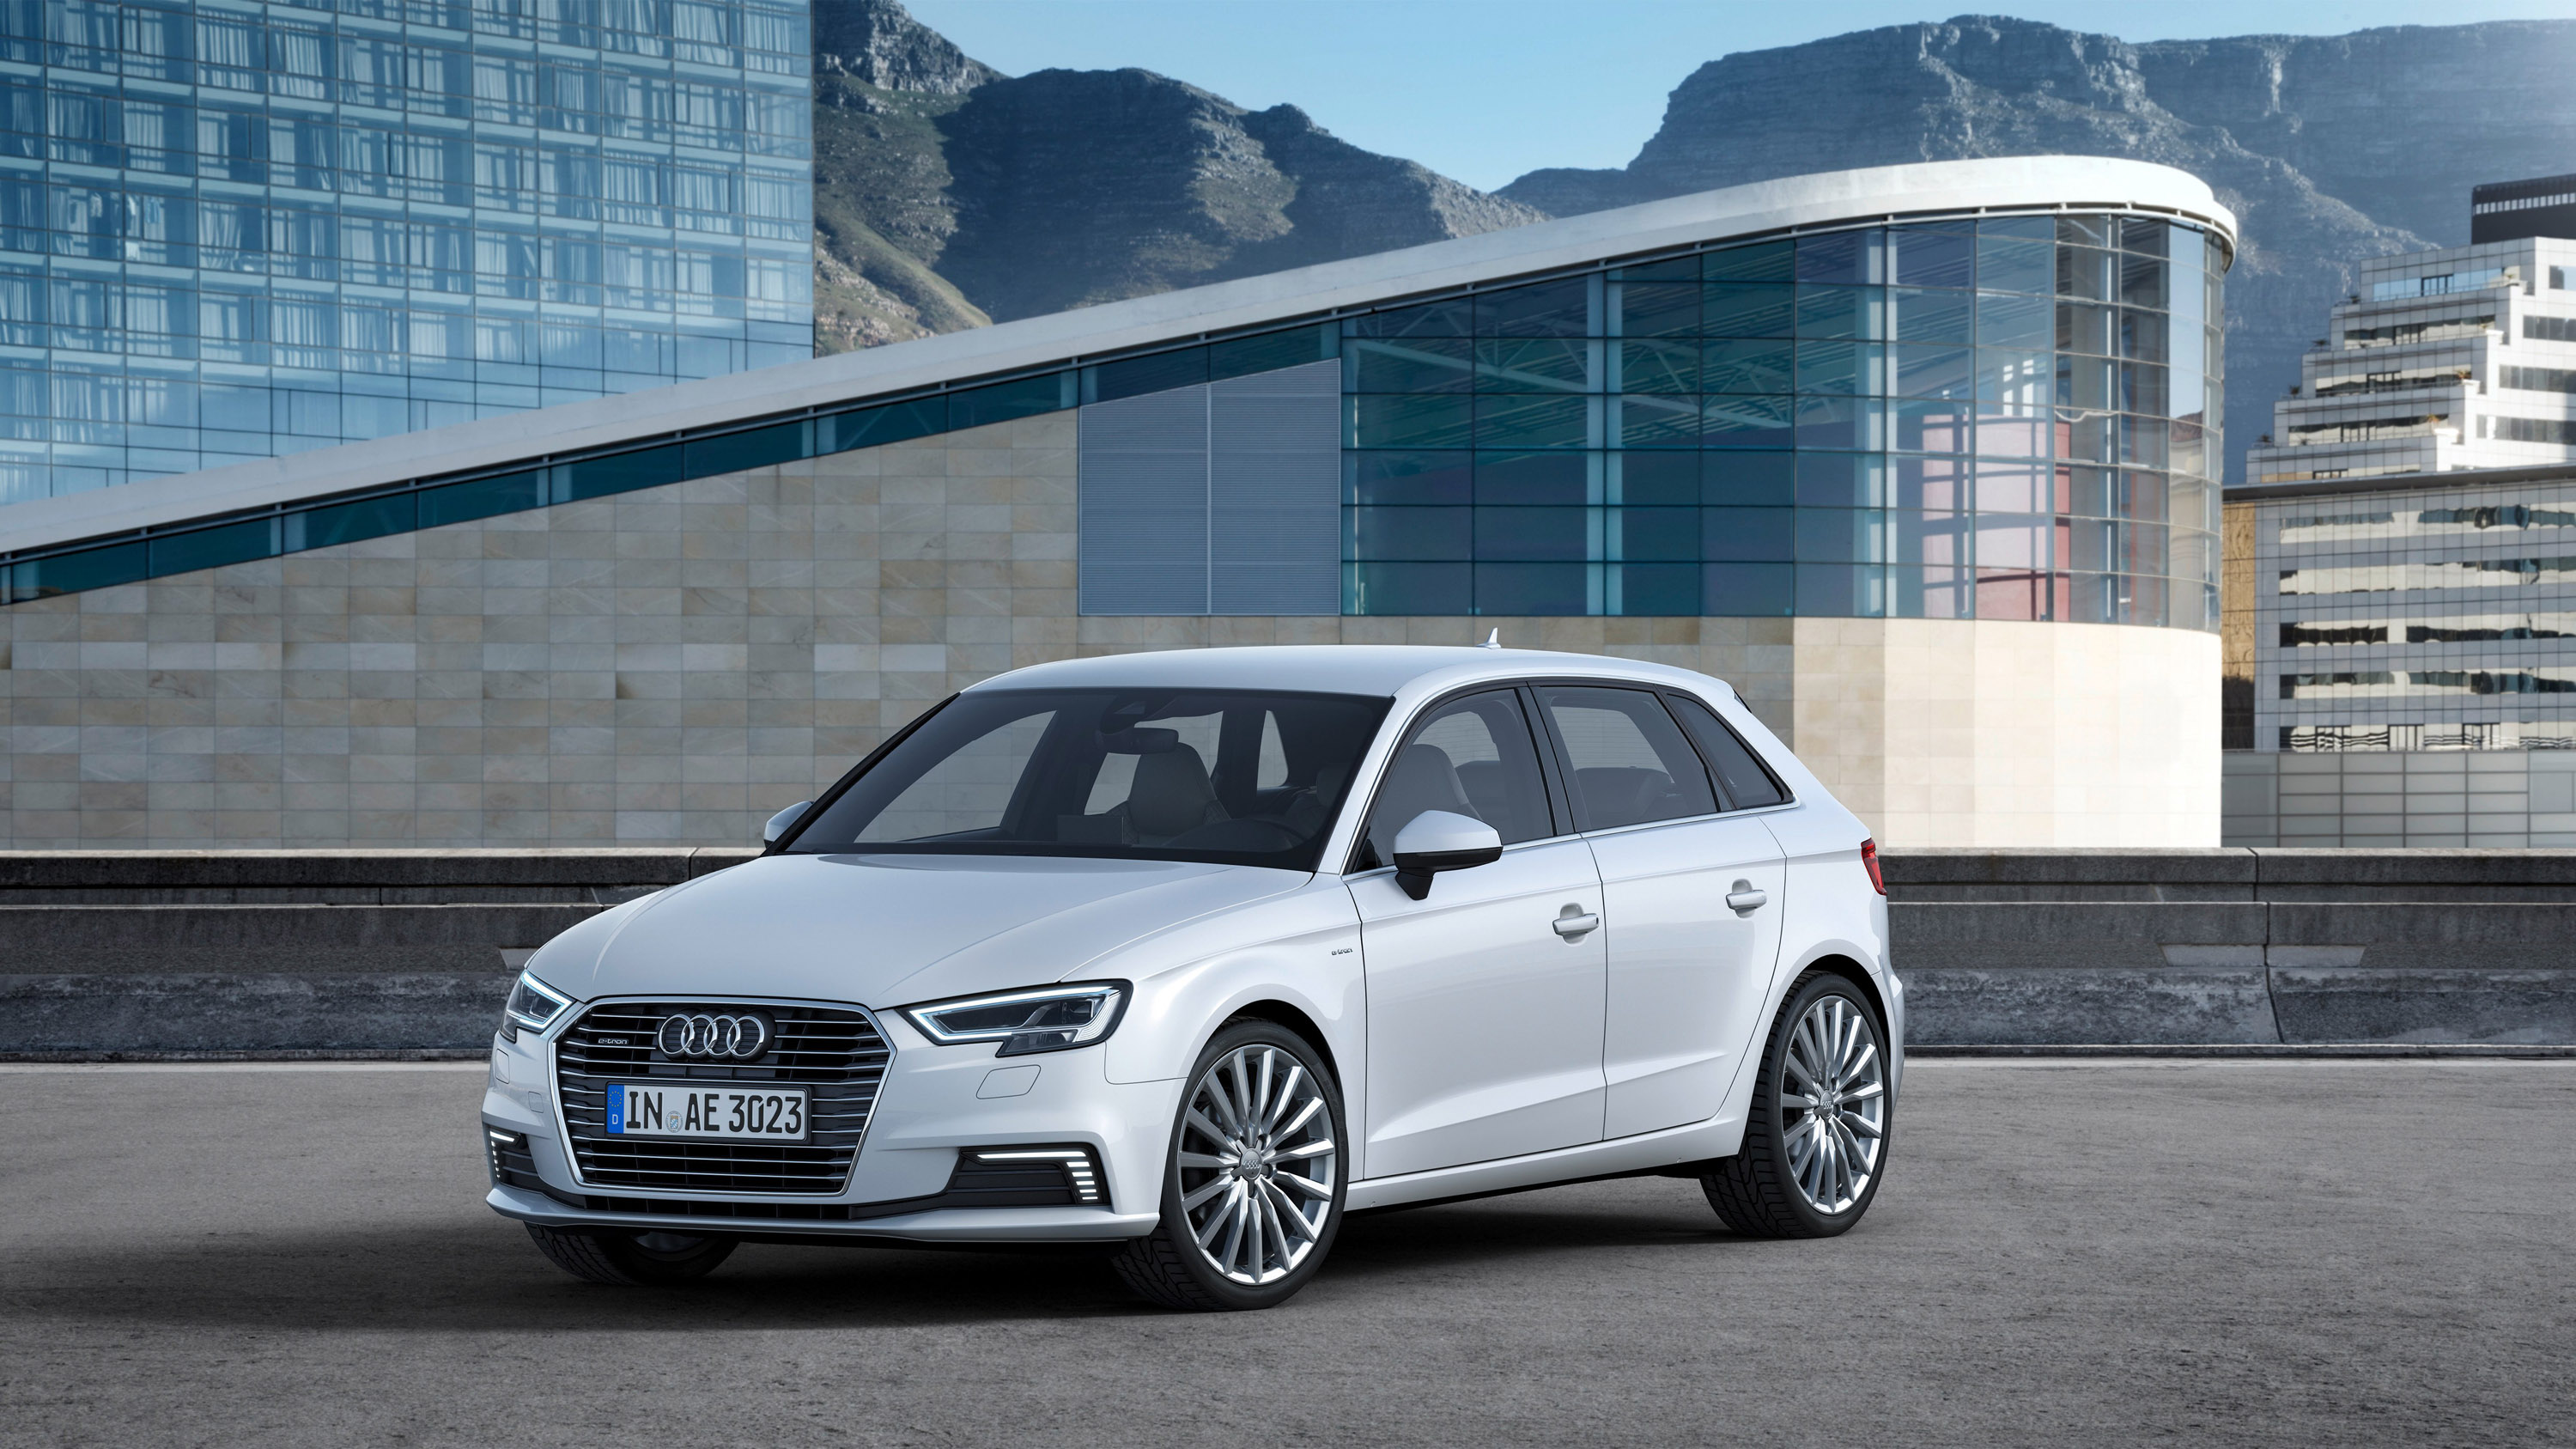 audi reveals the a3 sportback e tron model. Black Bedroom Furniture Sets. Home Design Ideas